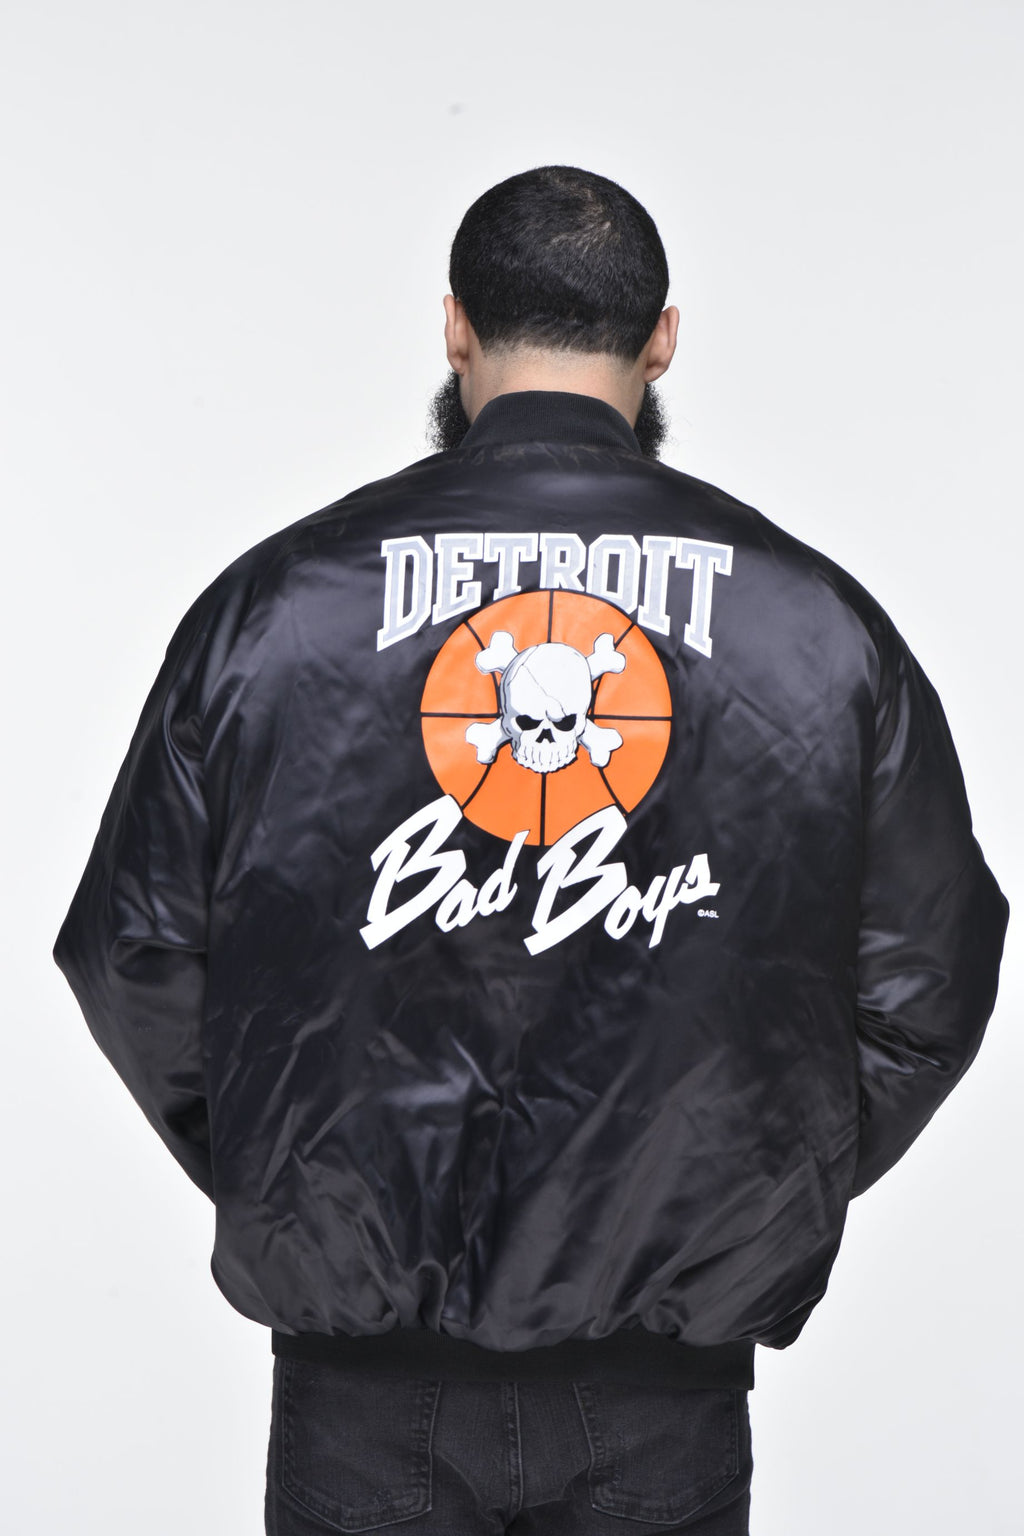 Men's Detroit Bad Boys Jacket – Black